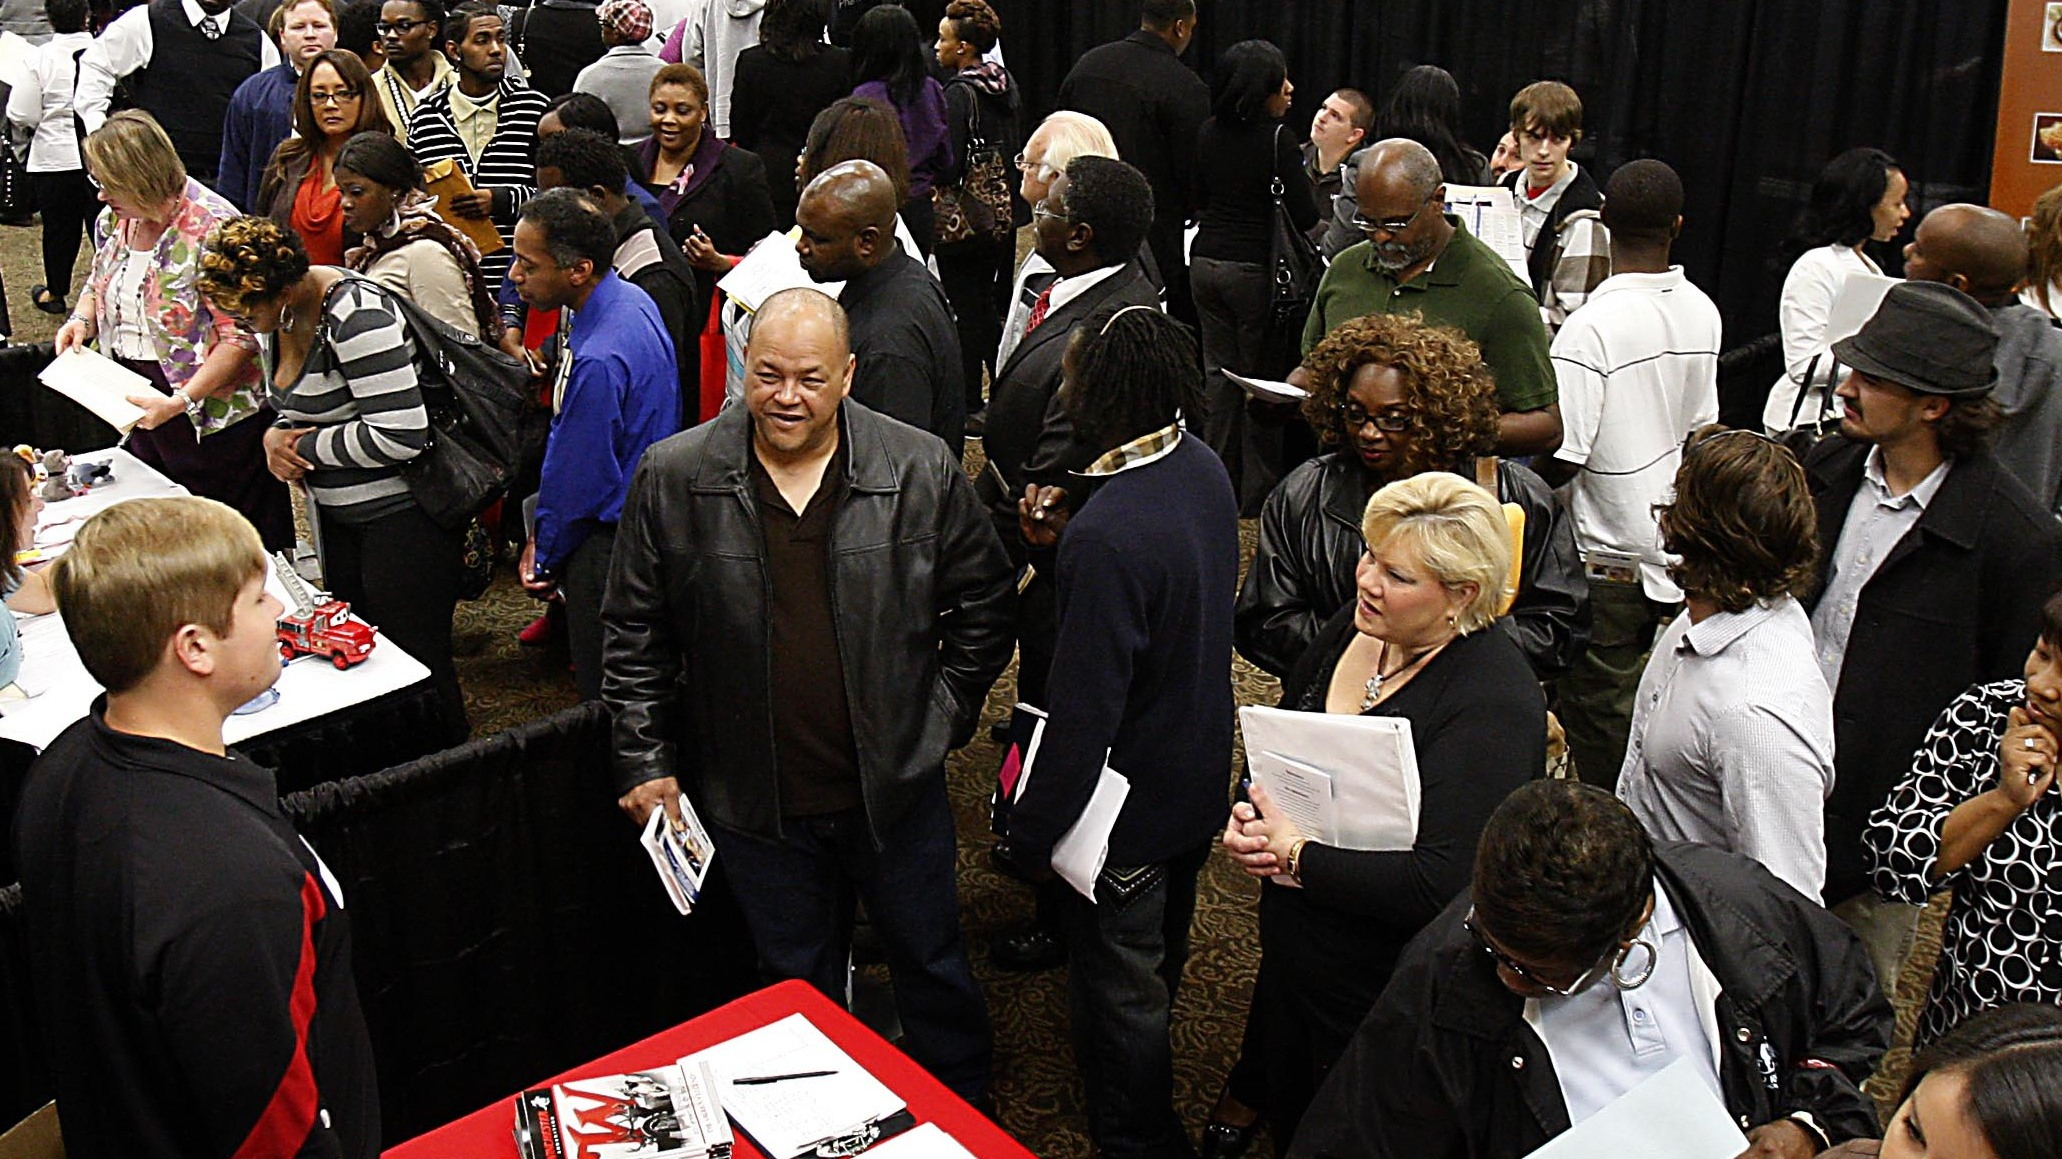 PHOTO:Hundreds of job applicants attend the DeSoto County Job Fair at Landers Center, Tuesday, Oct. 9, 2012, in Southaven, Miss.